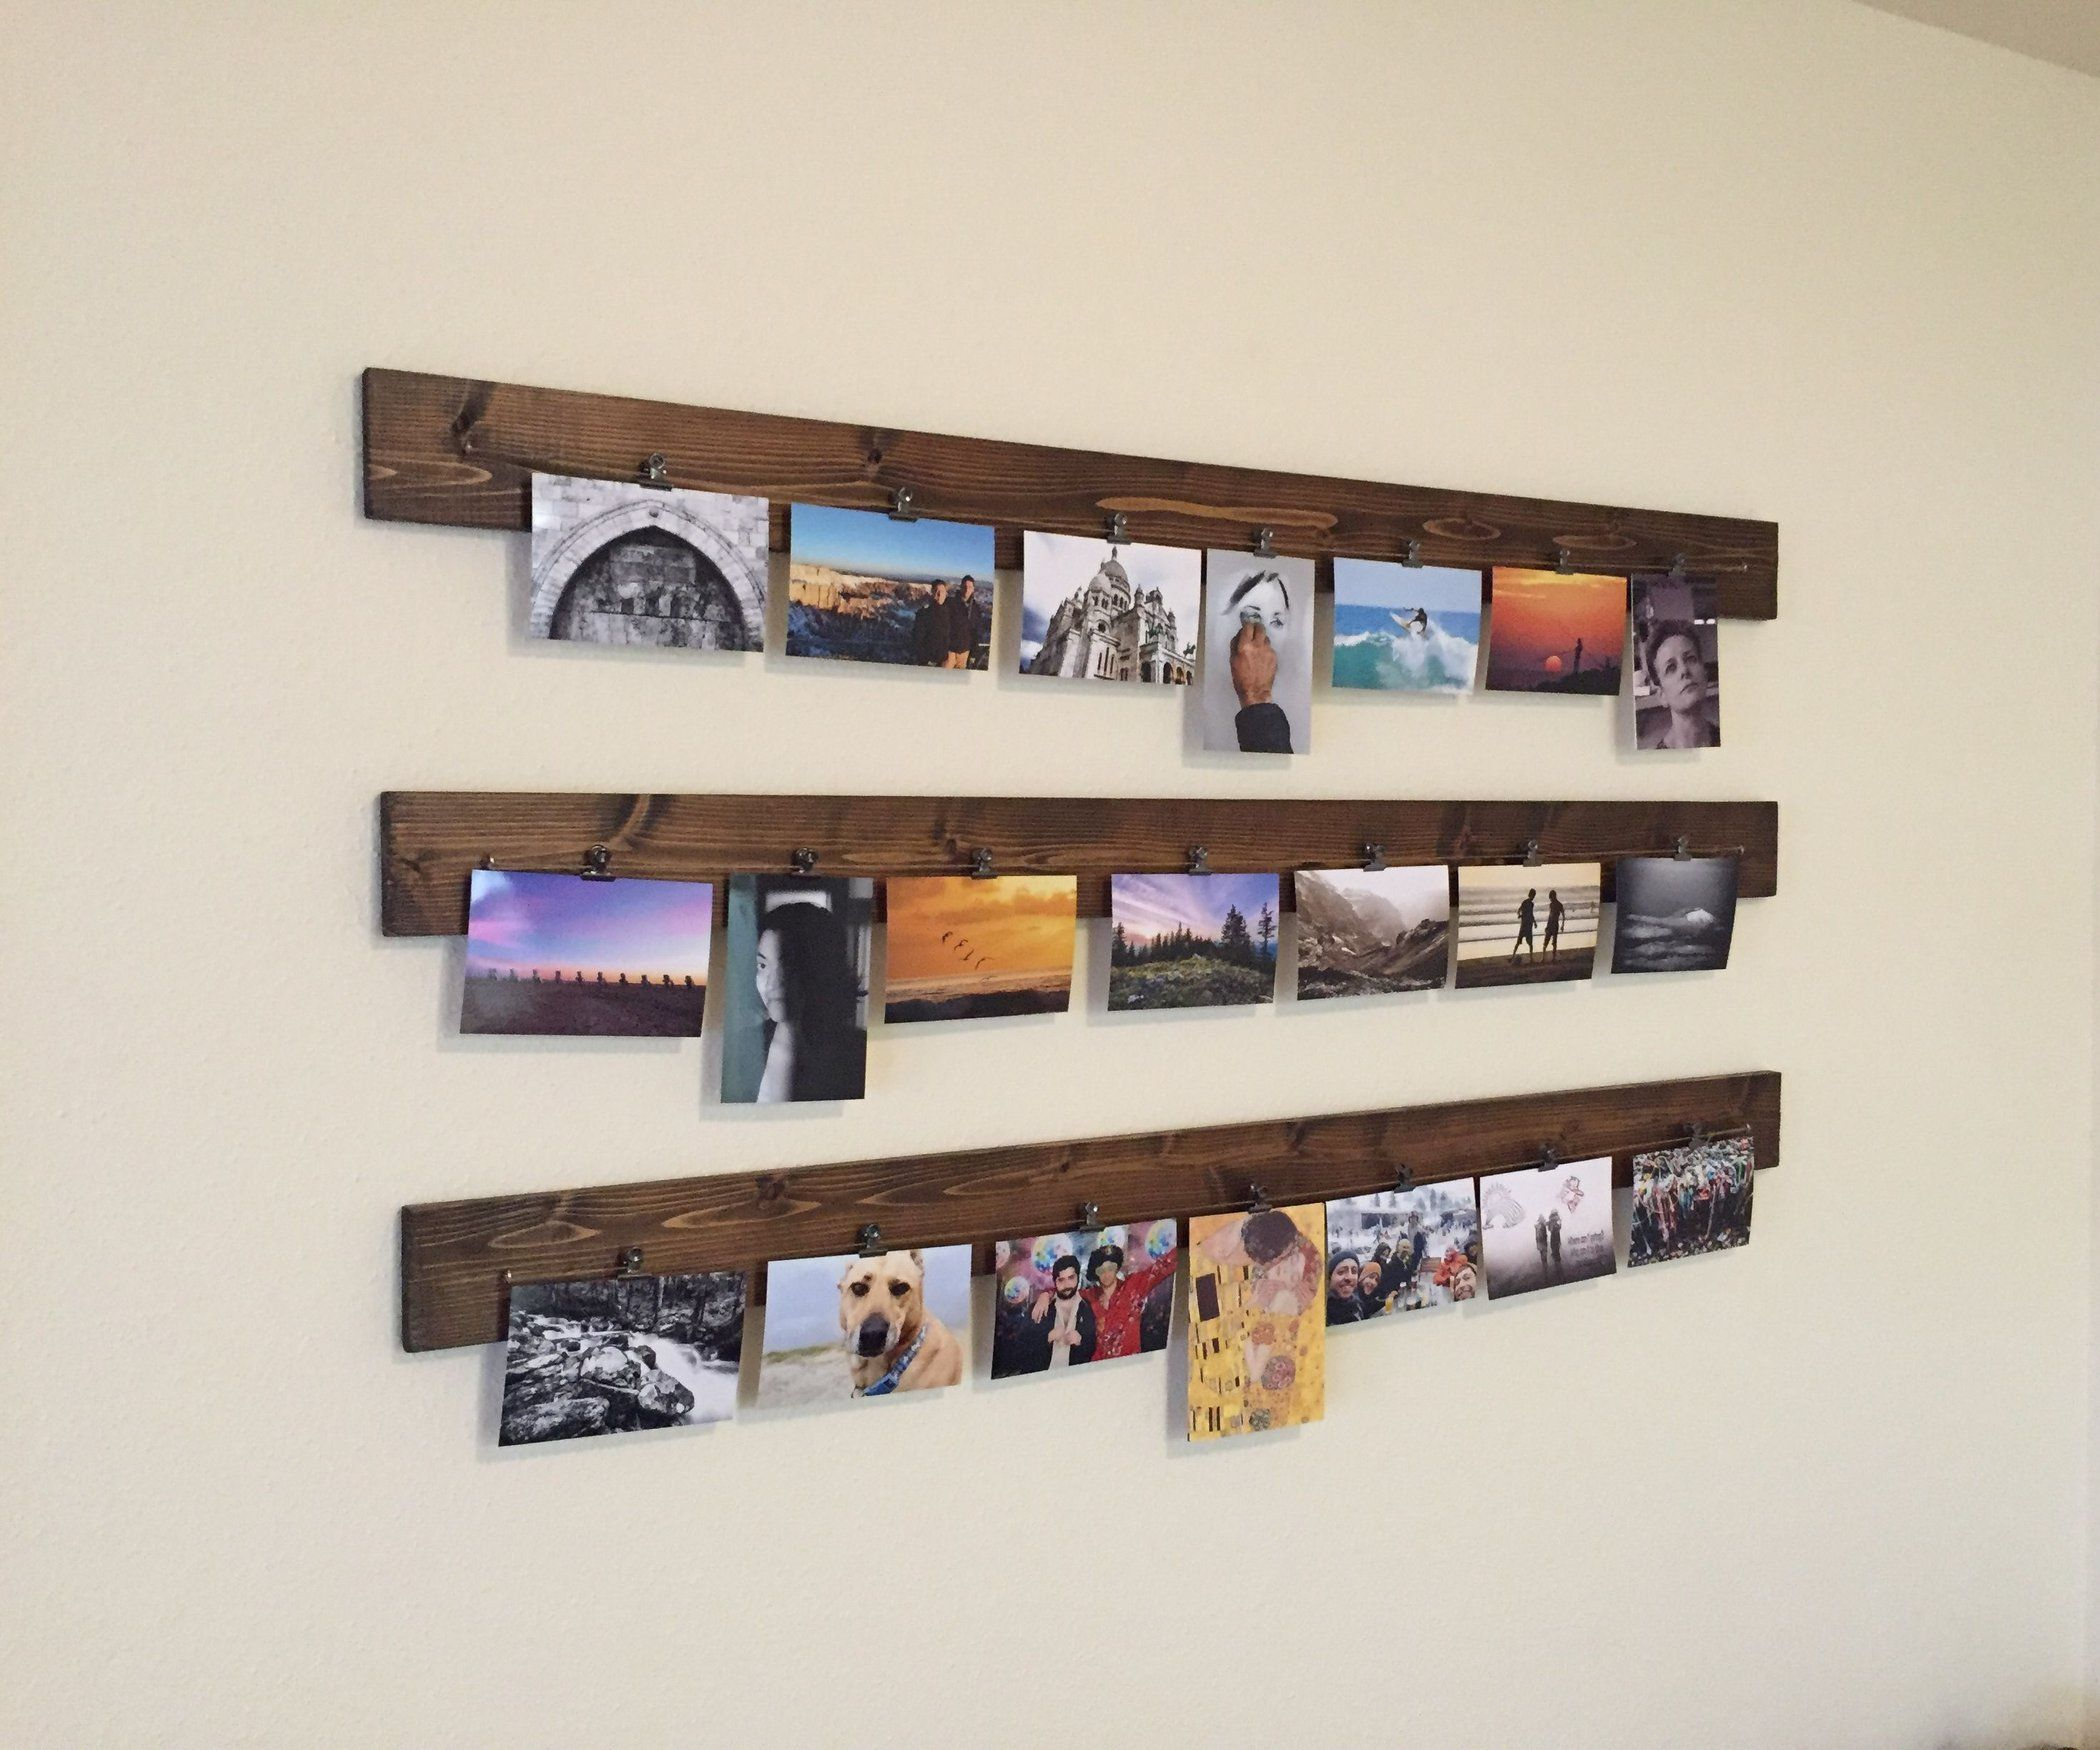 Wood Clothespin Photography Hanging Display Display Shelves Bars For Home Home